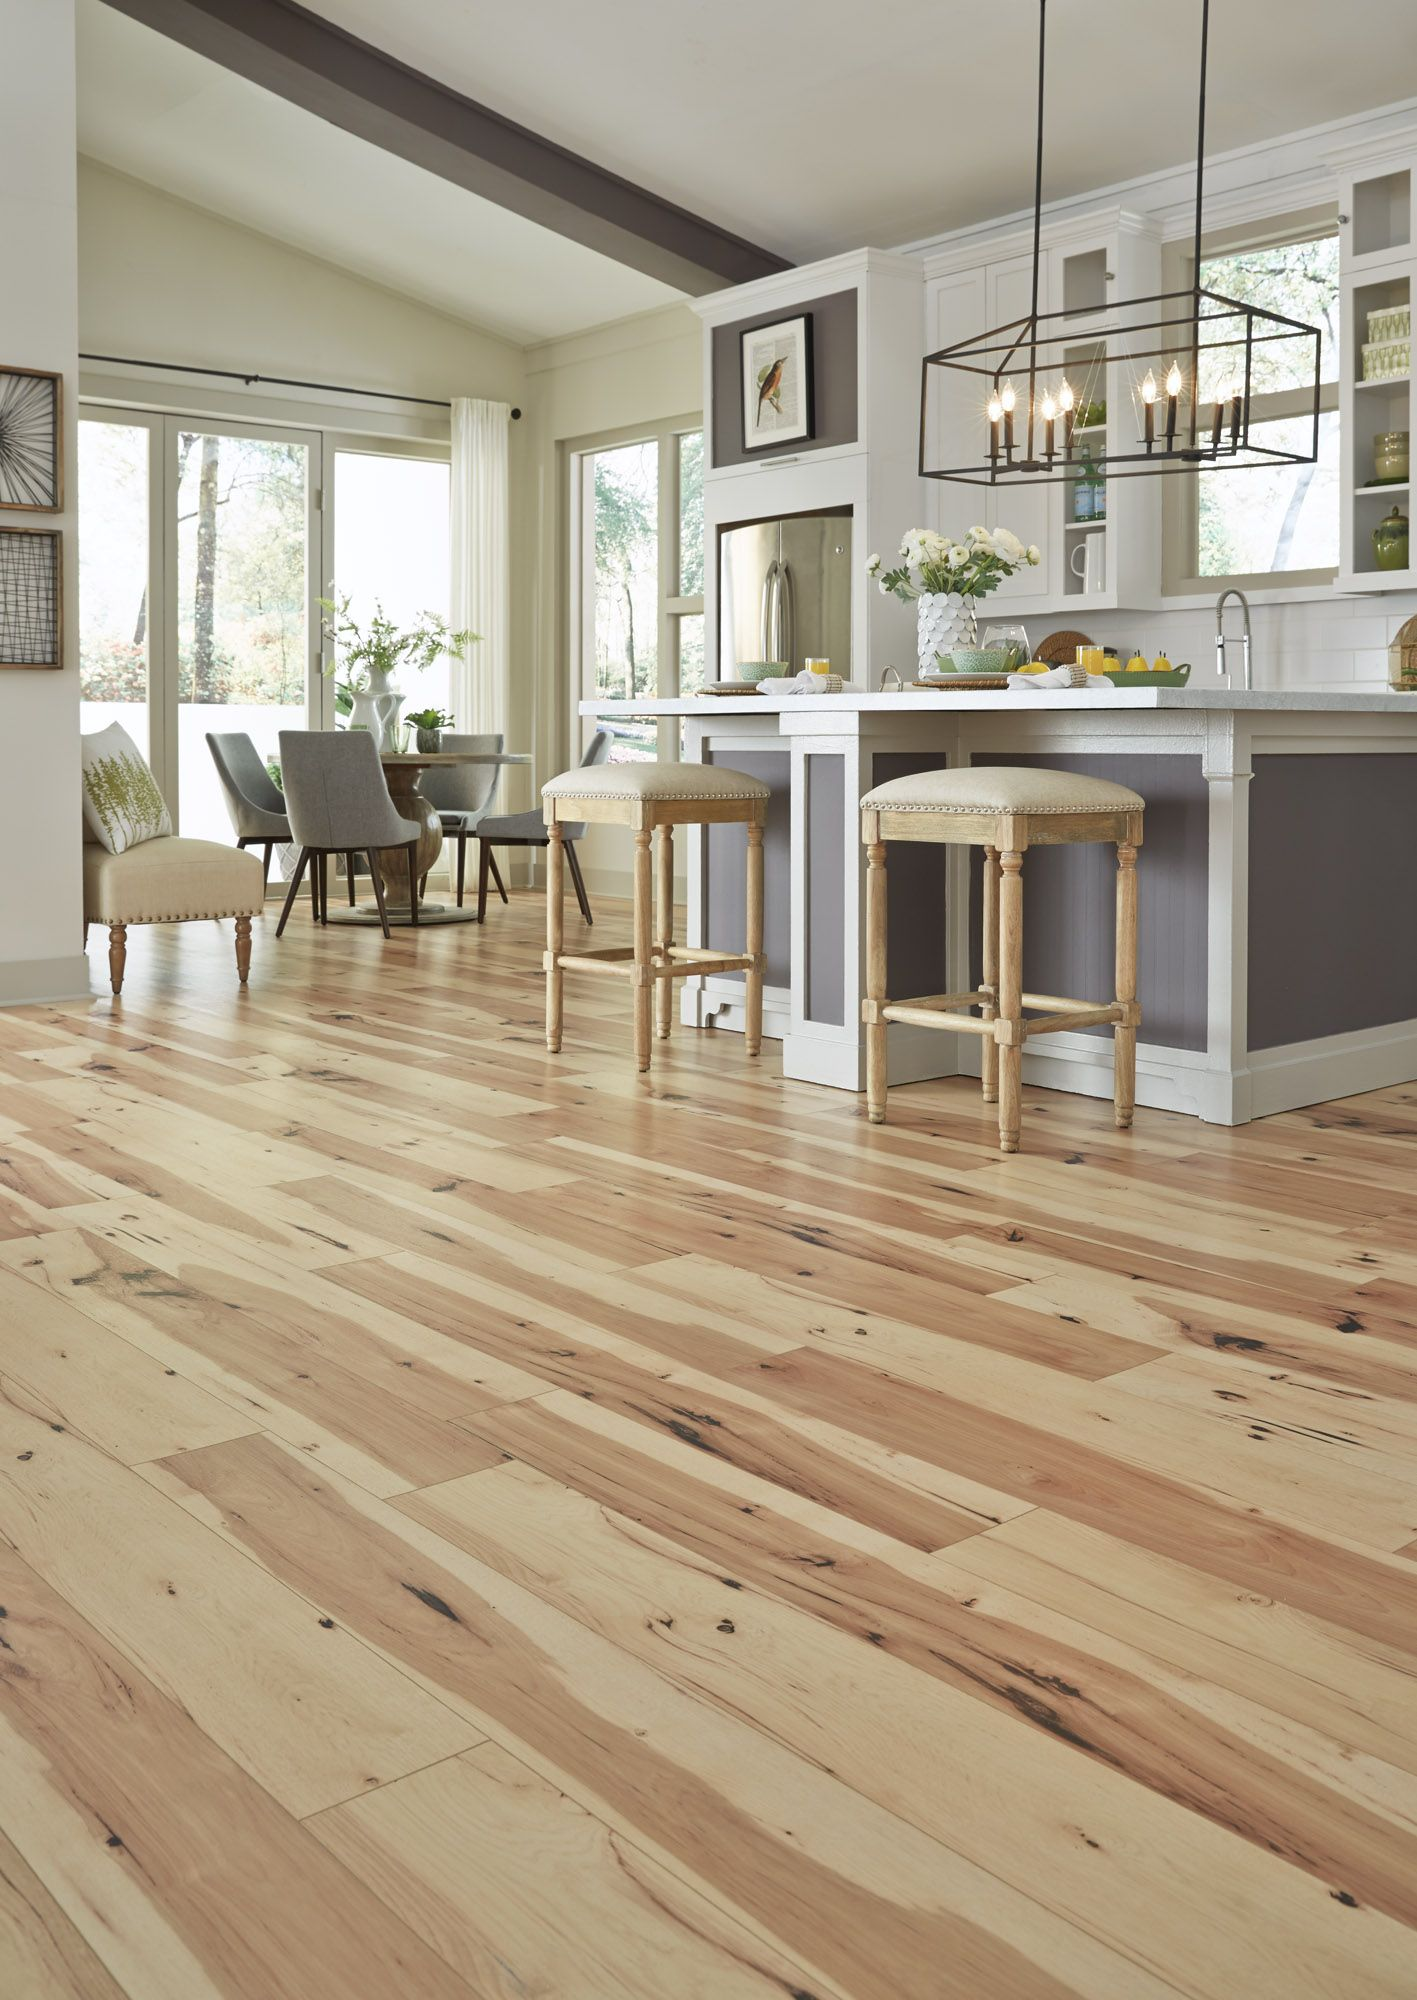 Felsen Somerset Hickory Ceramic Composite Plank Ccp Is The Next